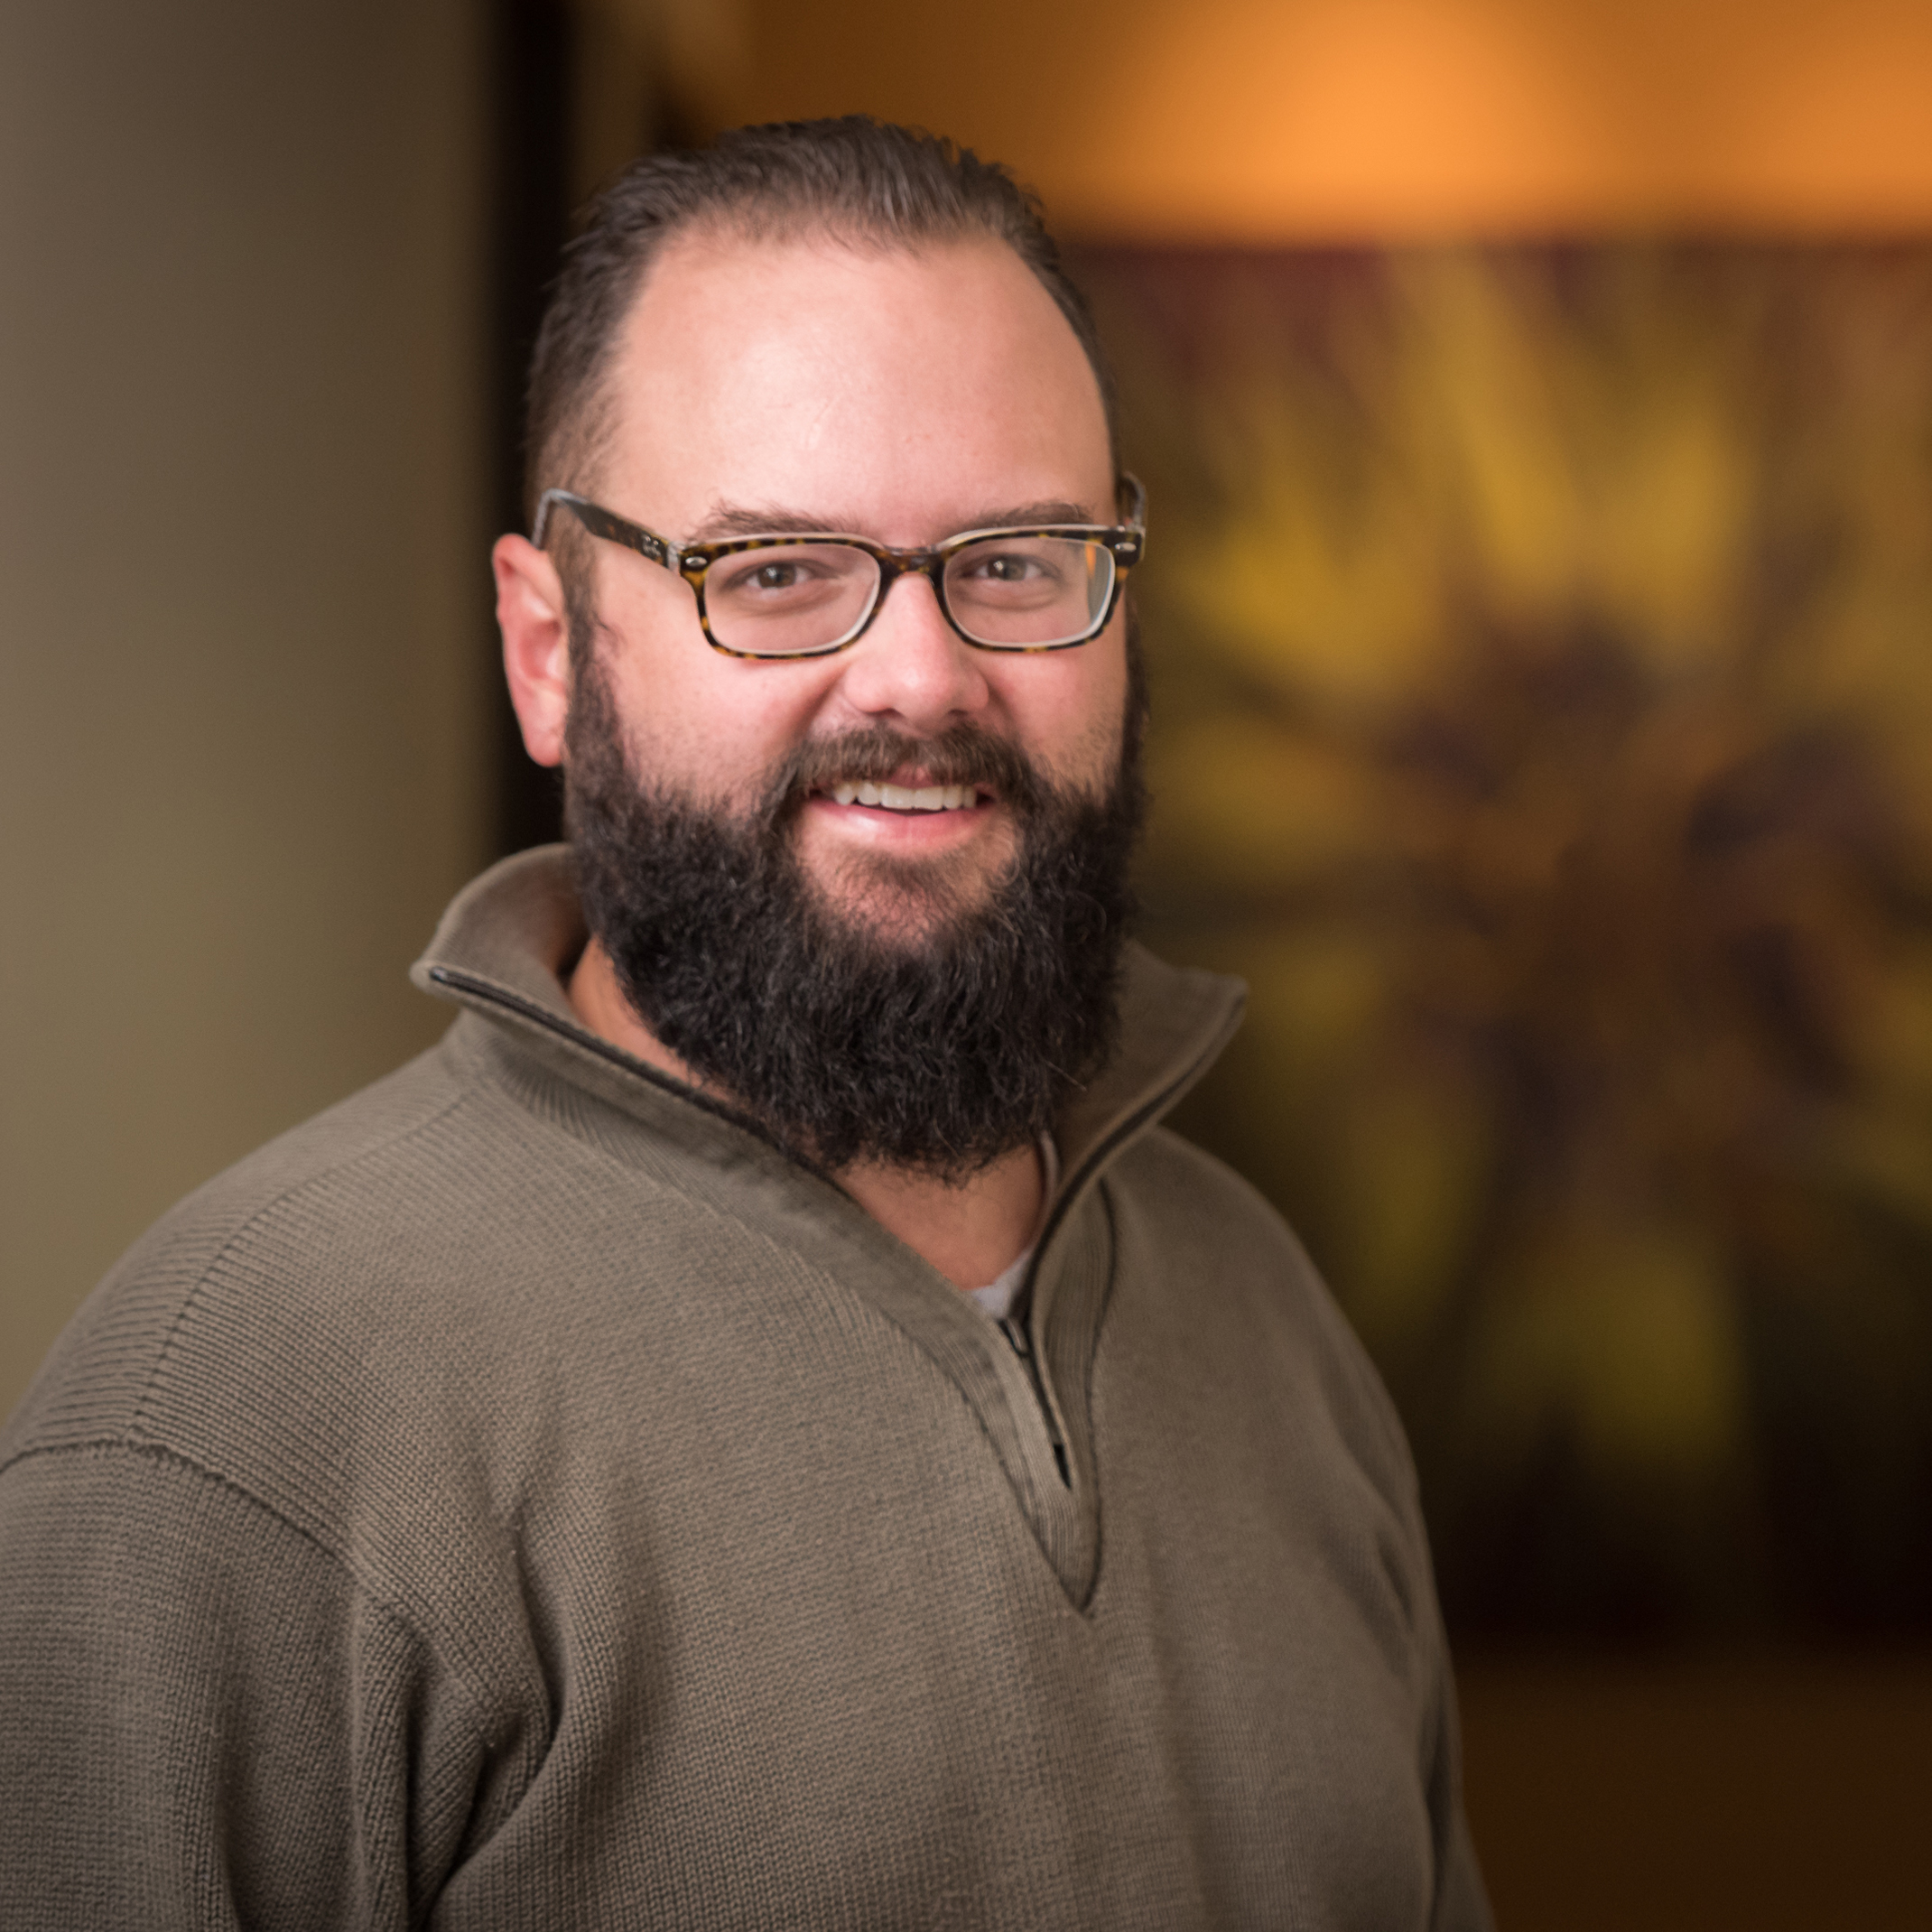 Joining DCBA in early 2014, Billy brought to DCBA 12 years of experience in project management and contract administration. Originally from Houston, Billy moved to Dallas upon graduation from Texas A & M in 2002 and has been involved with some of the Metroplex's major development projects while with another respected Dallas landscape architectural firm. With a keen eye for design detail, Billy serves as the prime person in the field overseeing DCBA's major projects while under construction. With Billy's involvement, Clients are assured that their investments are watched carefully by a person with a vast knowledge of construction means and methods. In addition to his construction services, Billy also assumes project management duties and has been involved with a number of DCBA's master-planned community, urban design, park, and trail projects. Billy is a Texas registered landscape architect and holds additional registration in Oklahoma and New Mexico.